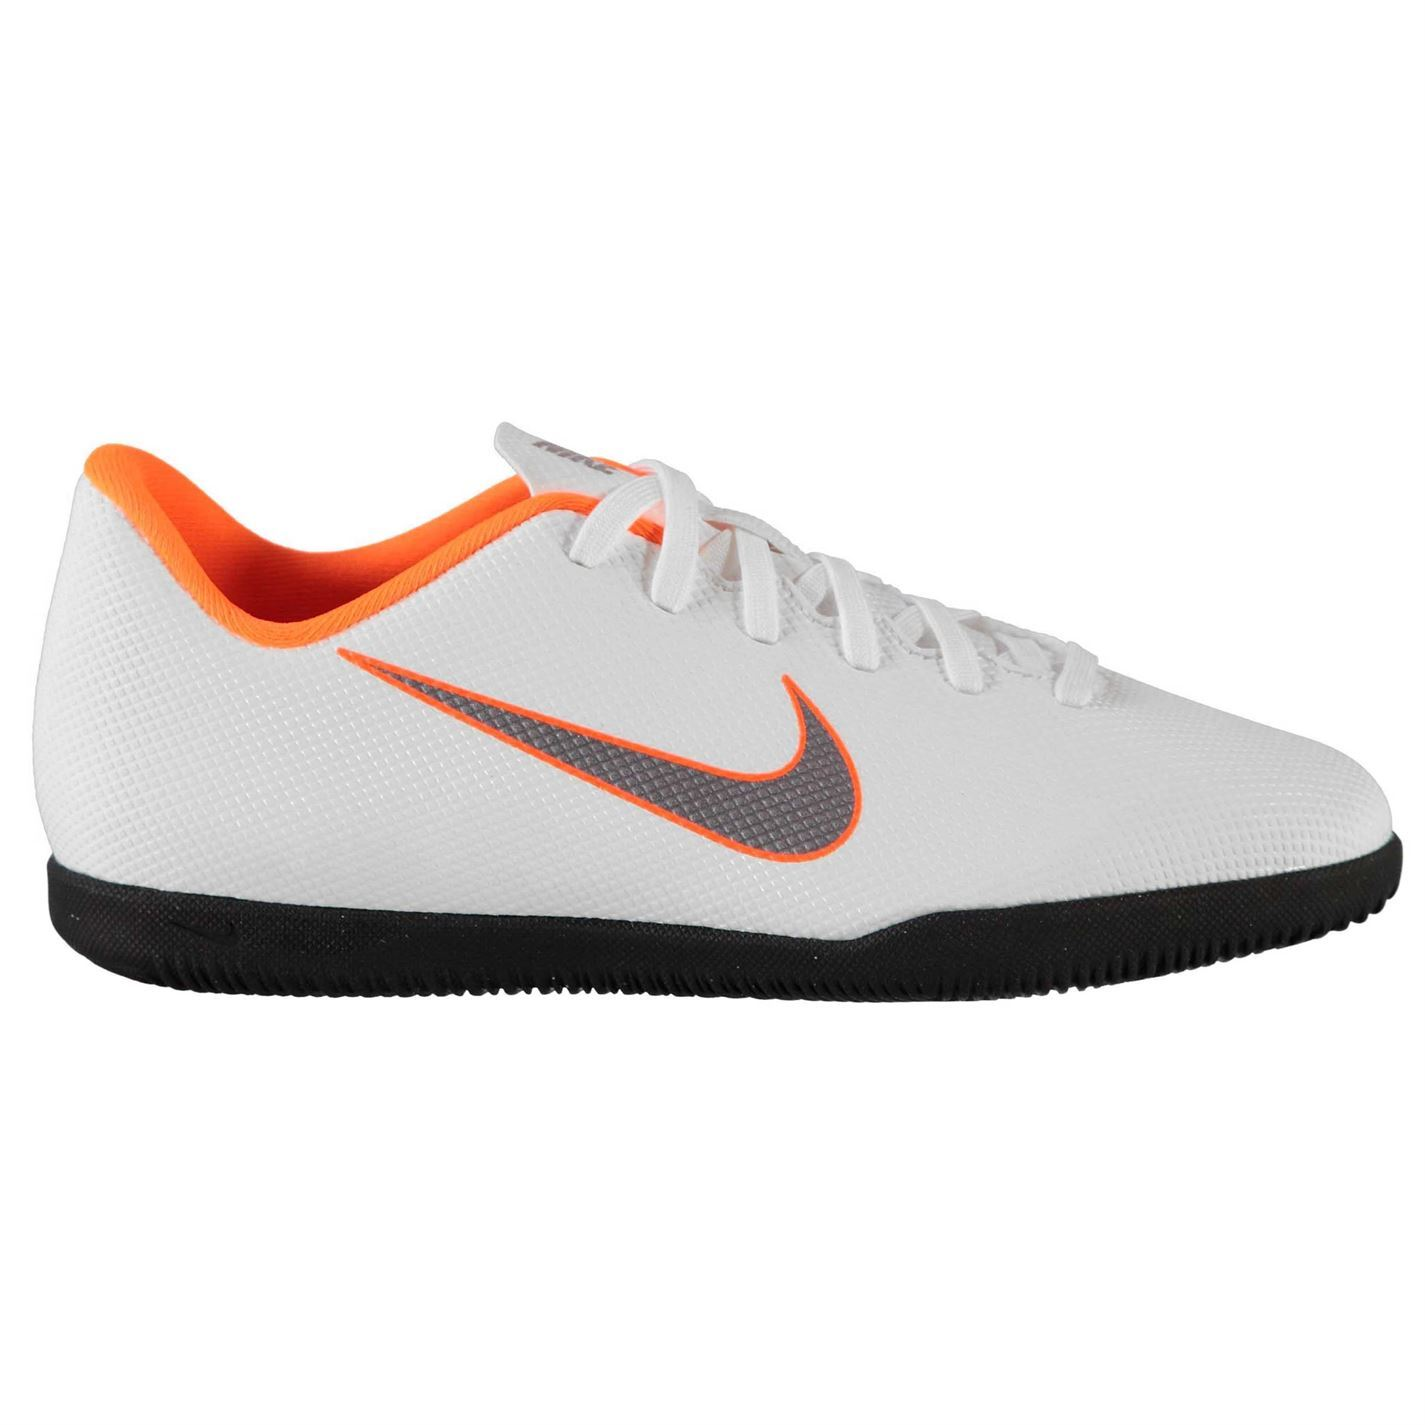 hot sales 5239f a221f Soccer Club Indoor Vapor Juniors Mercurial Football Trainers Nike qE0tpwq